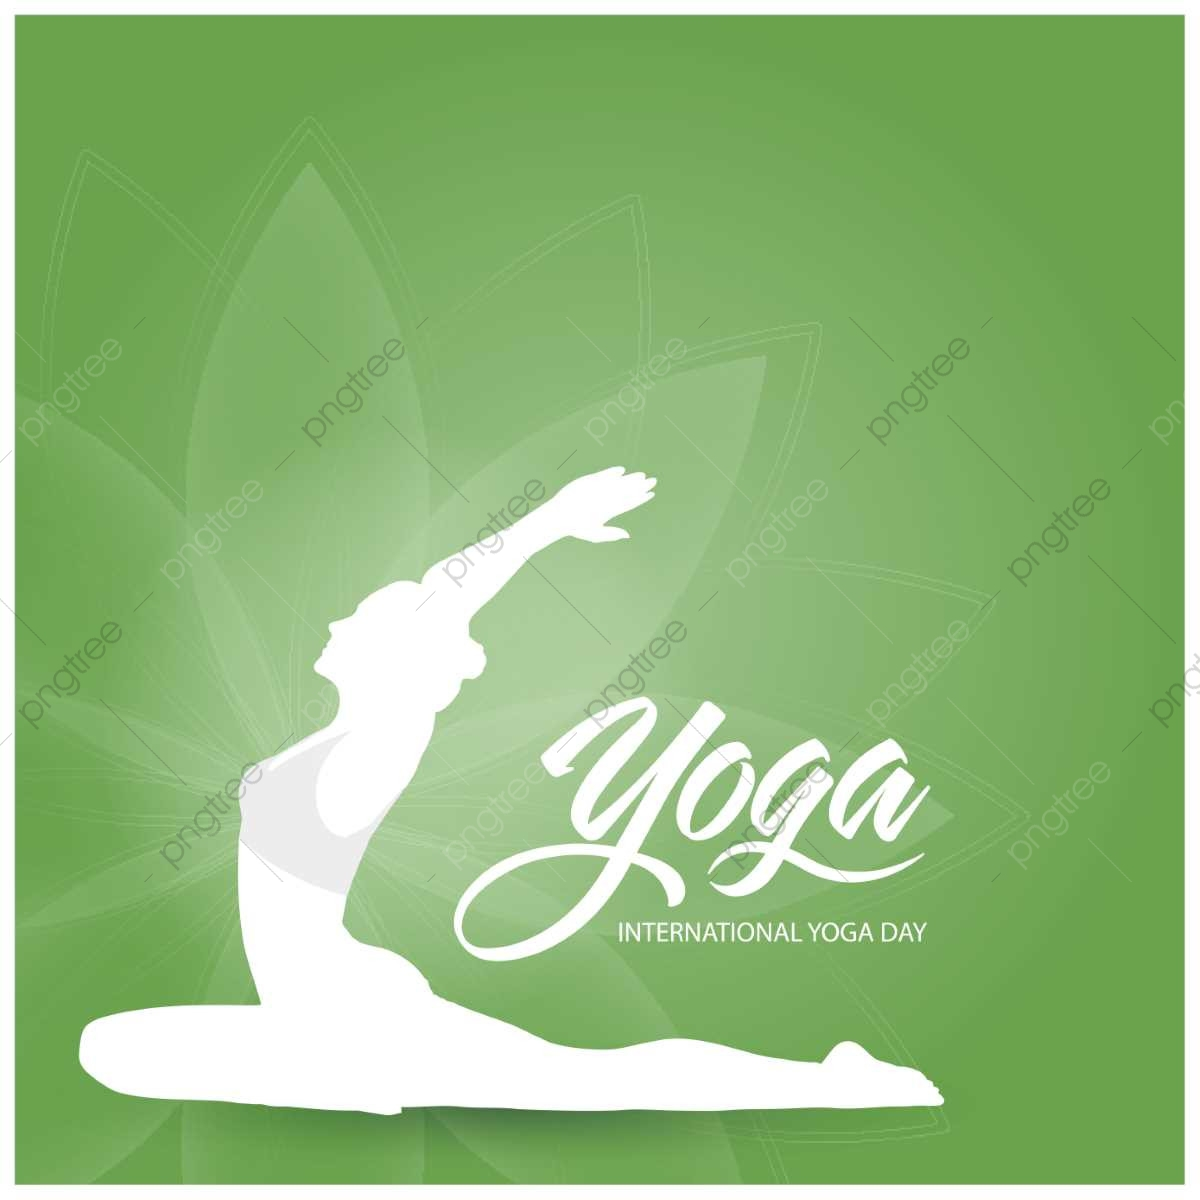 International Yoga Day Card Vector Yoga Day, Yoga, International.